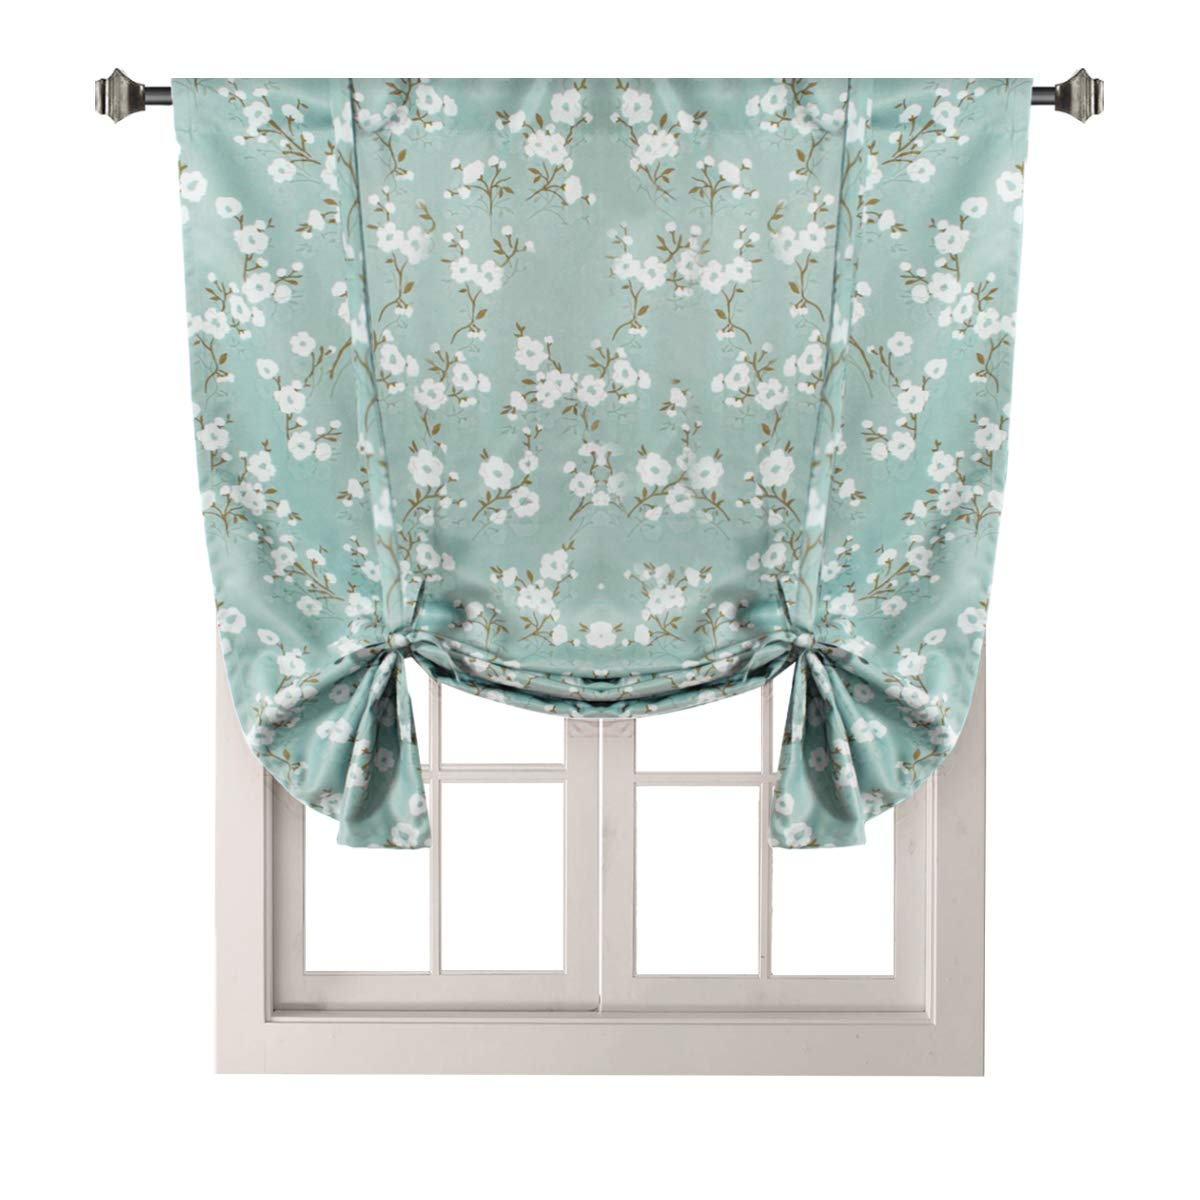 H.VERSAILTEX Traditional Window Drapes Aqua Floral Country Style Pattern Thermal Insulated Blackout Curtain for Living Room Rod Pocket Tie Up Shade Window Treatment Panel, W42 x L63 Inch by H.VERSAILTEX (Image #1)